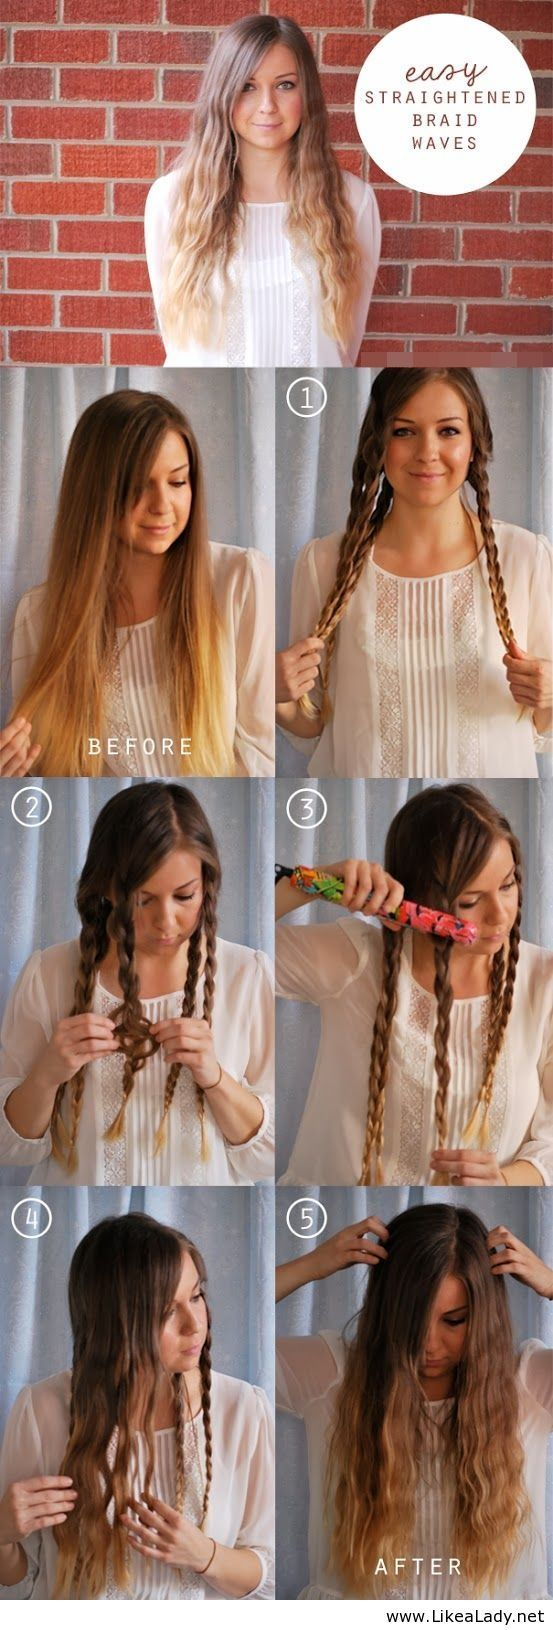 10 best images about Curly Hair Inspiration on Pinterest